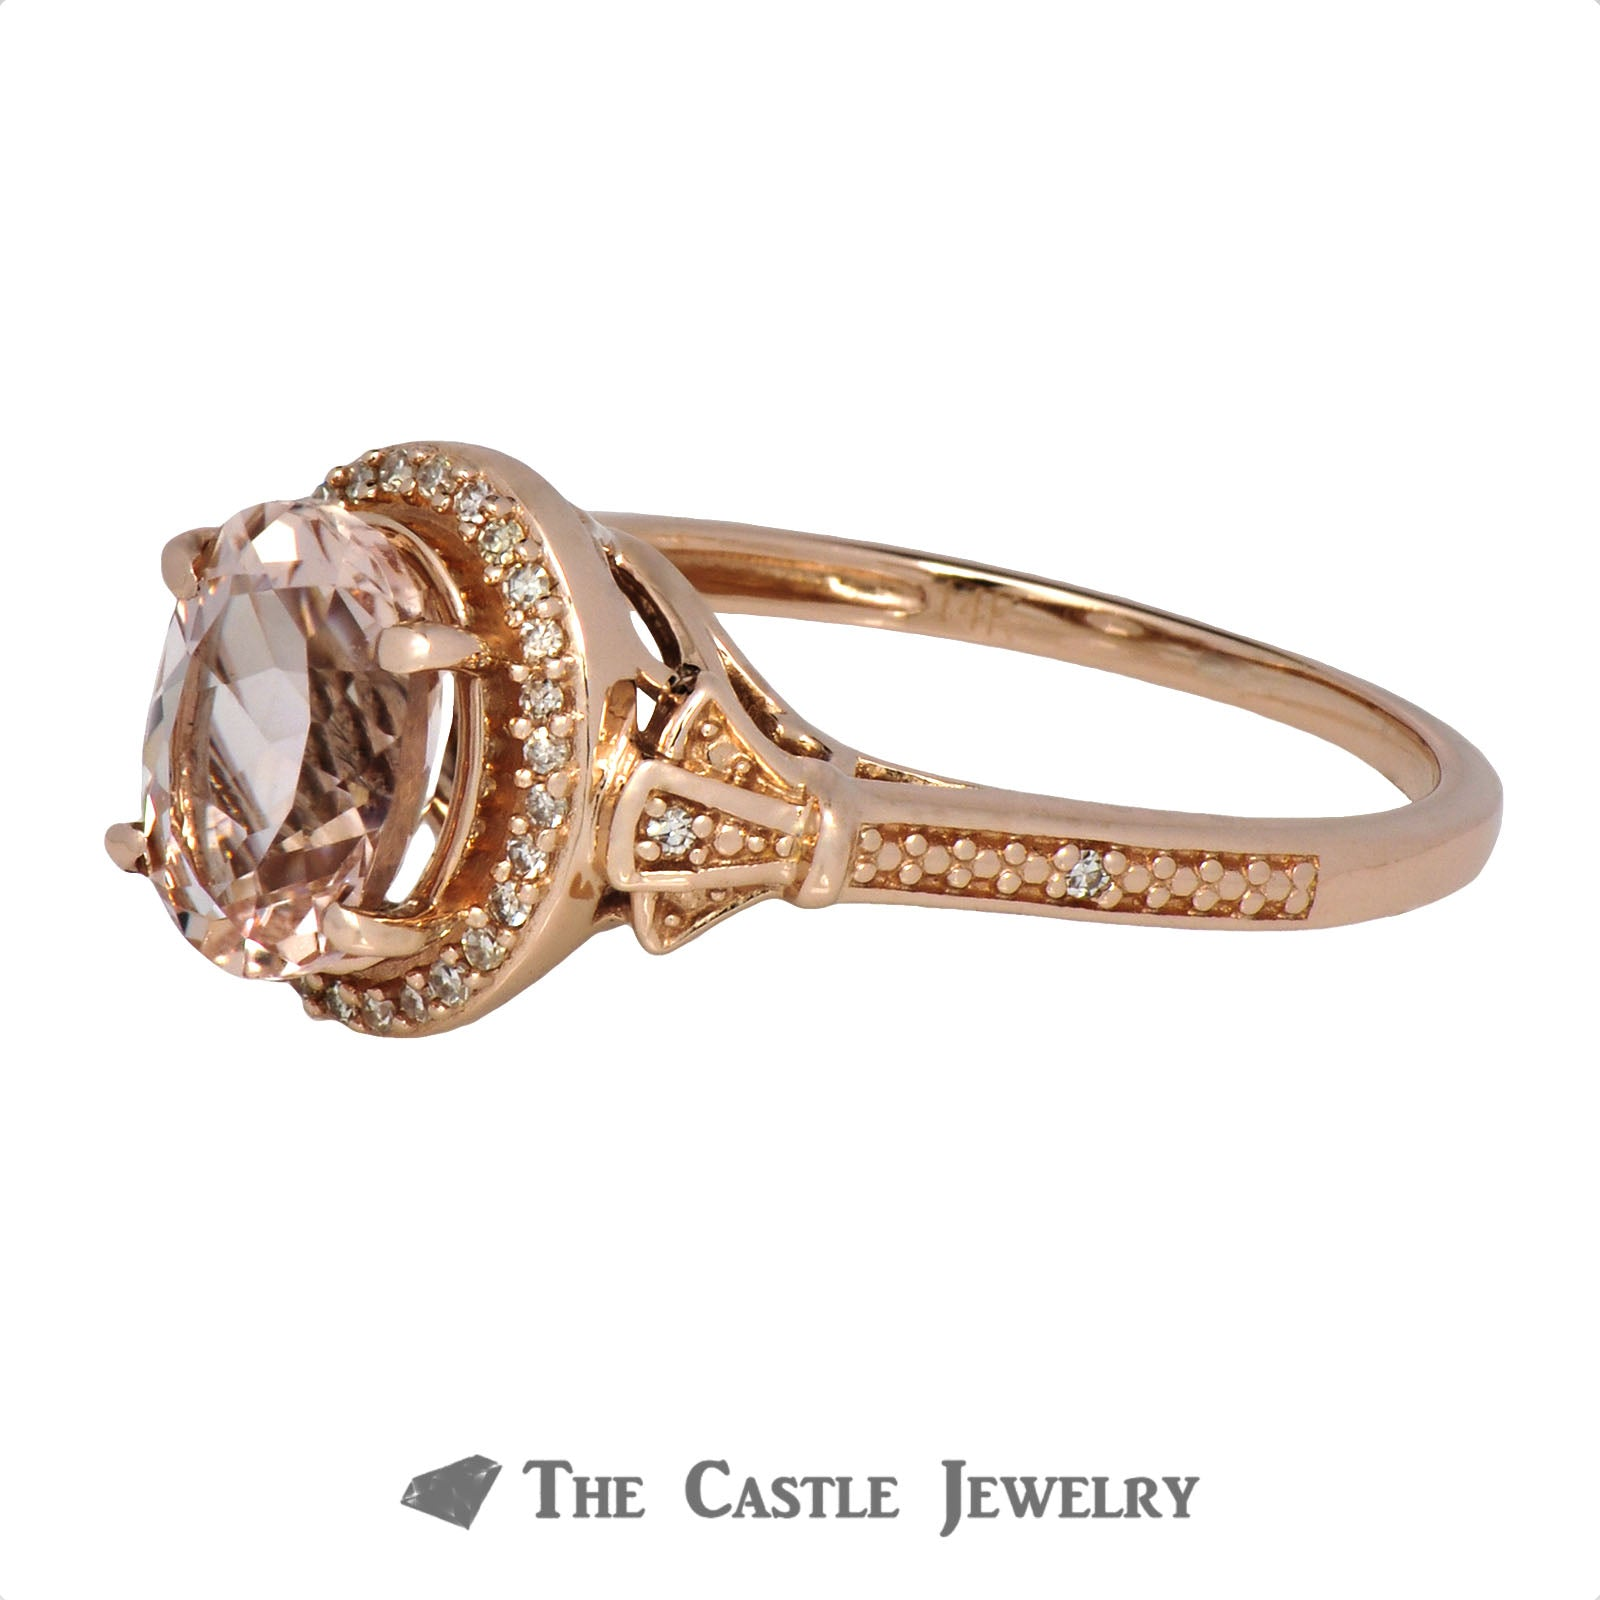 Oval Morganite Ring with Diamond Accents in 10K Rose Gold-2